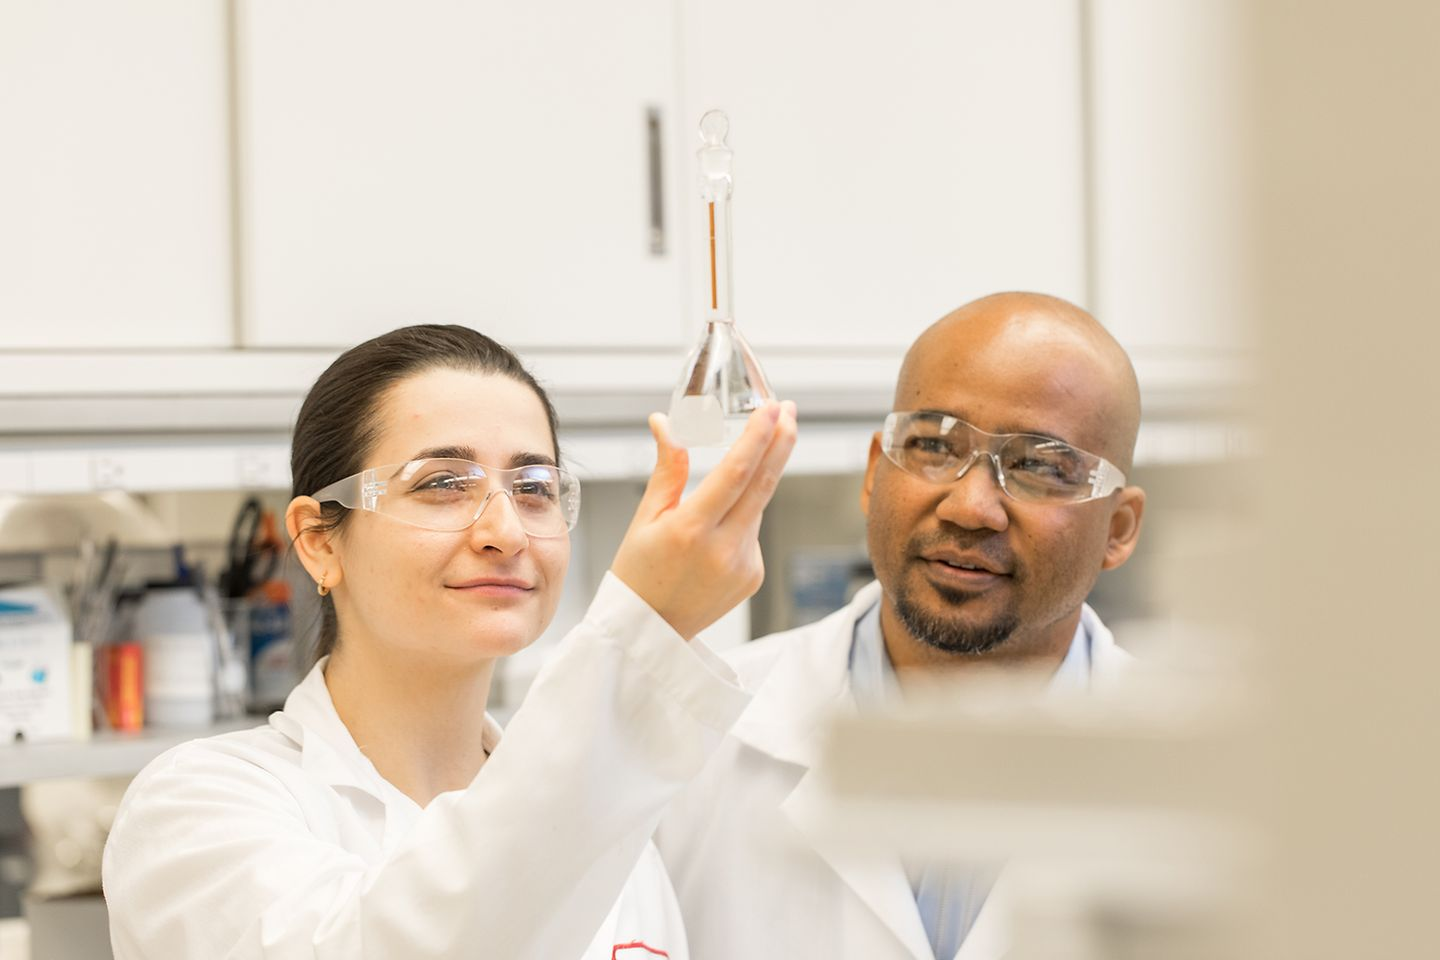 A female and a male lab worker contemplate a liquid in a vial